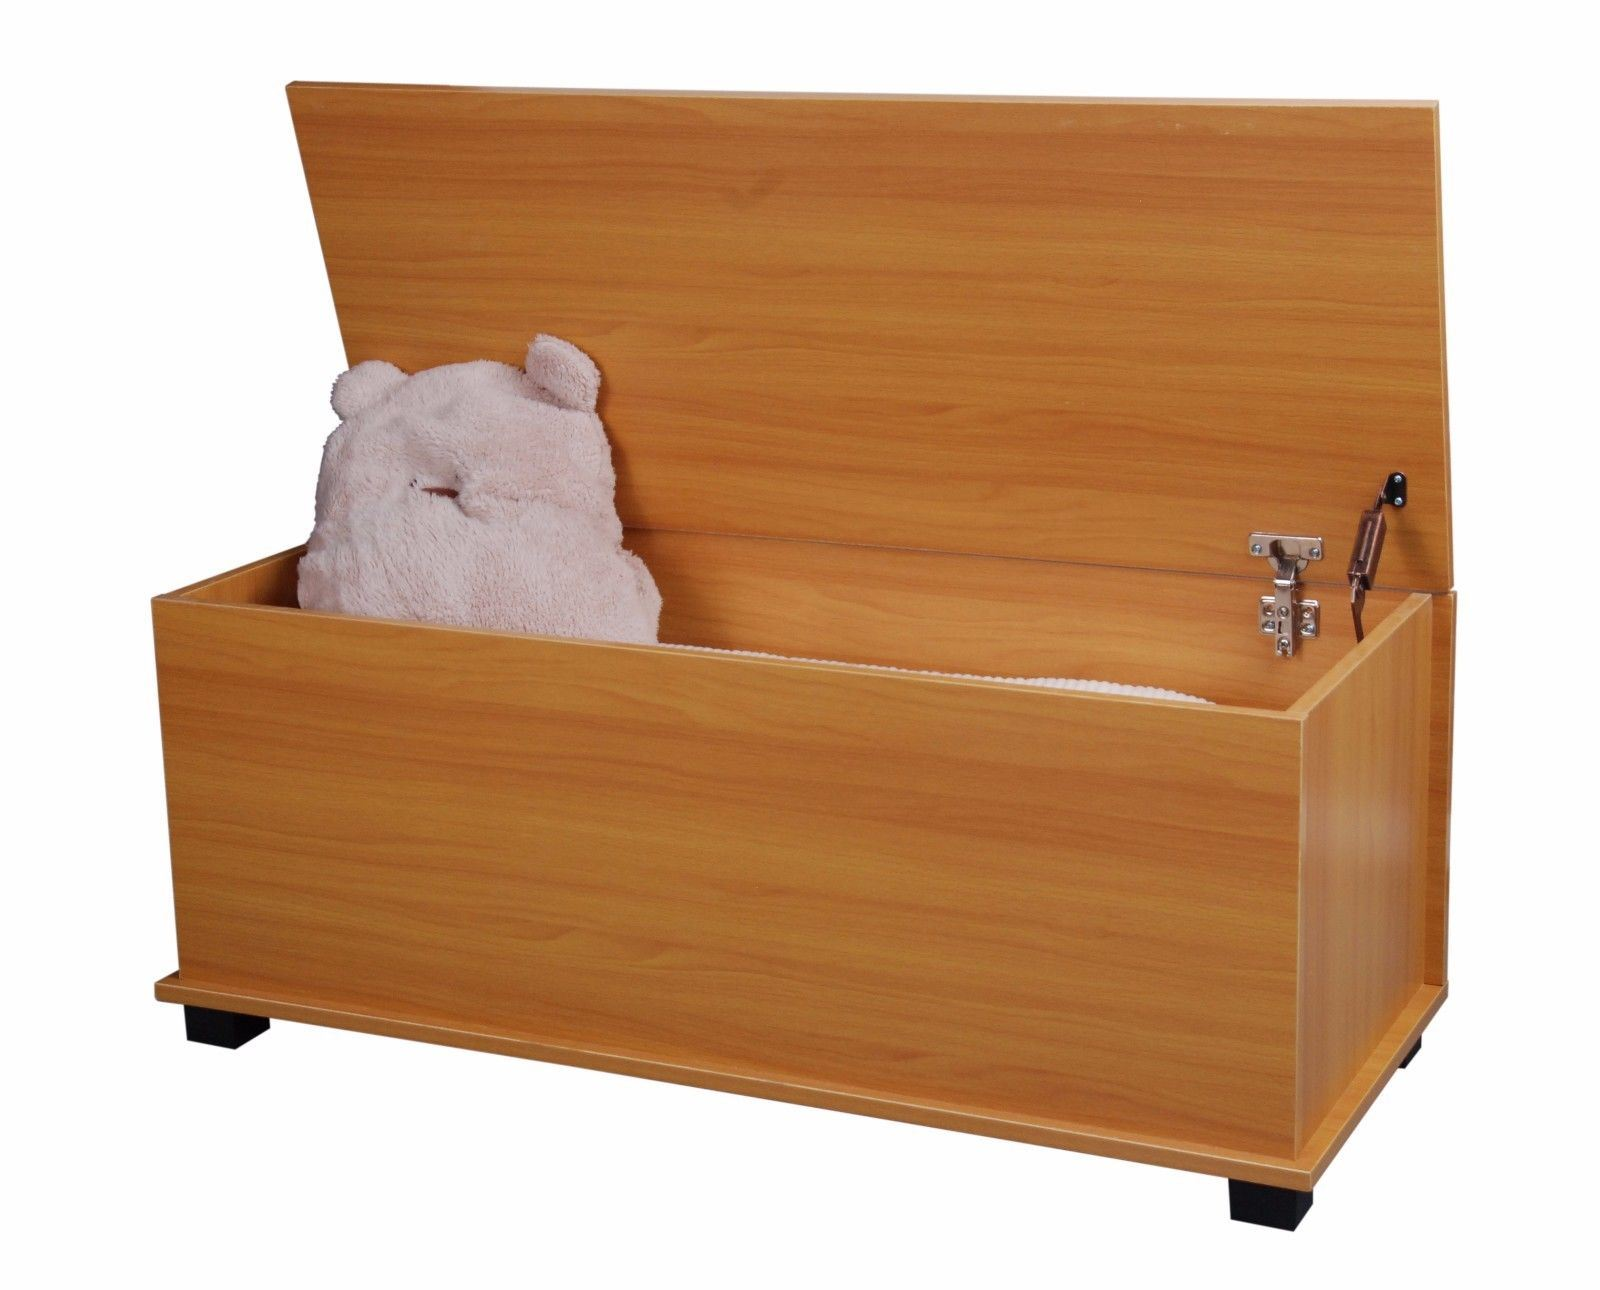 NEW BLEACH WOODEN OTTOMAN WOODEN TOY STORAGE CHEST TRUNK BOX WITH HINGES  sc 1 st  eBay & NEW BLEACH WOODEN OTTOMAN WOODEN TOY STORAGE CHEST TRUNK BOX WITH ...